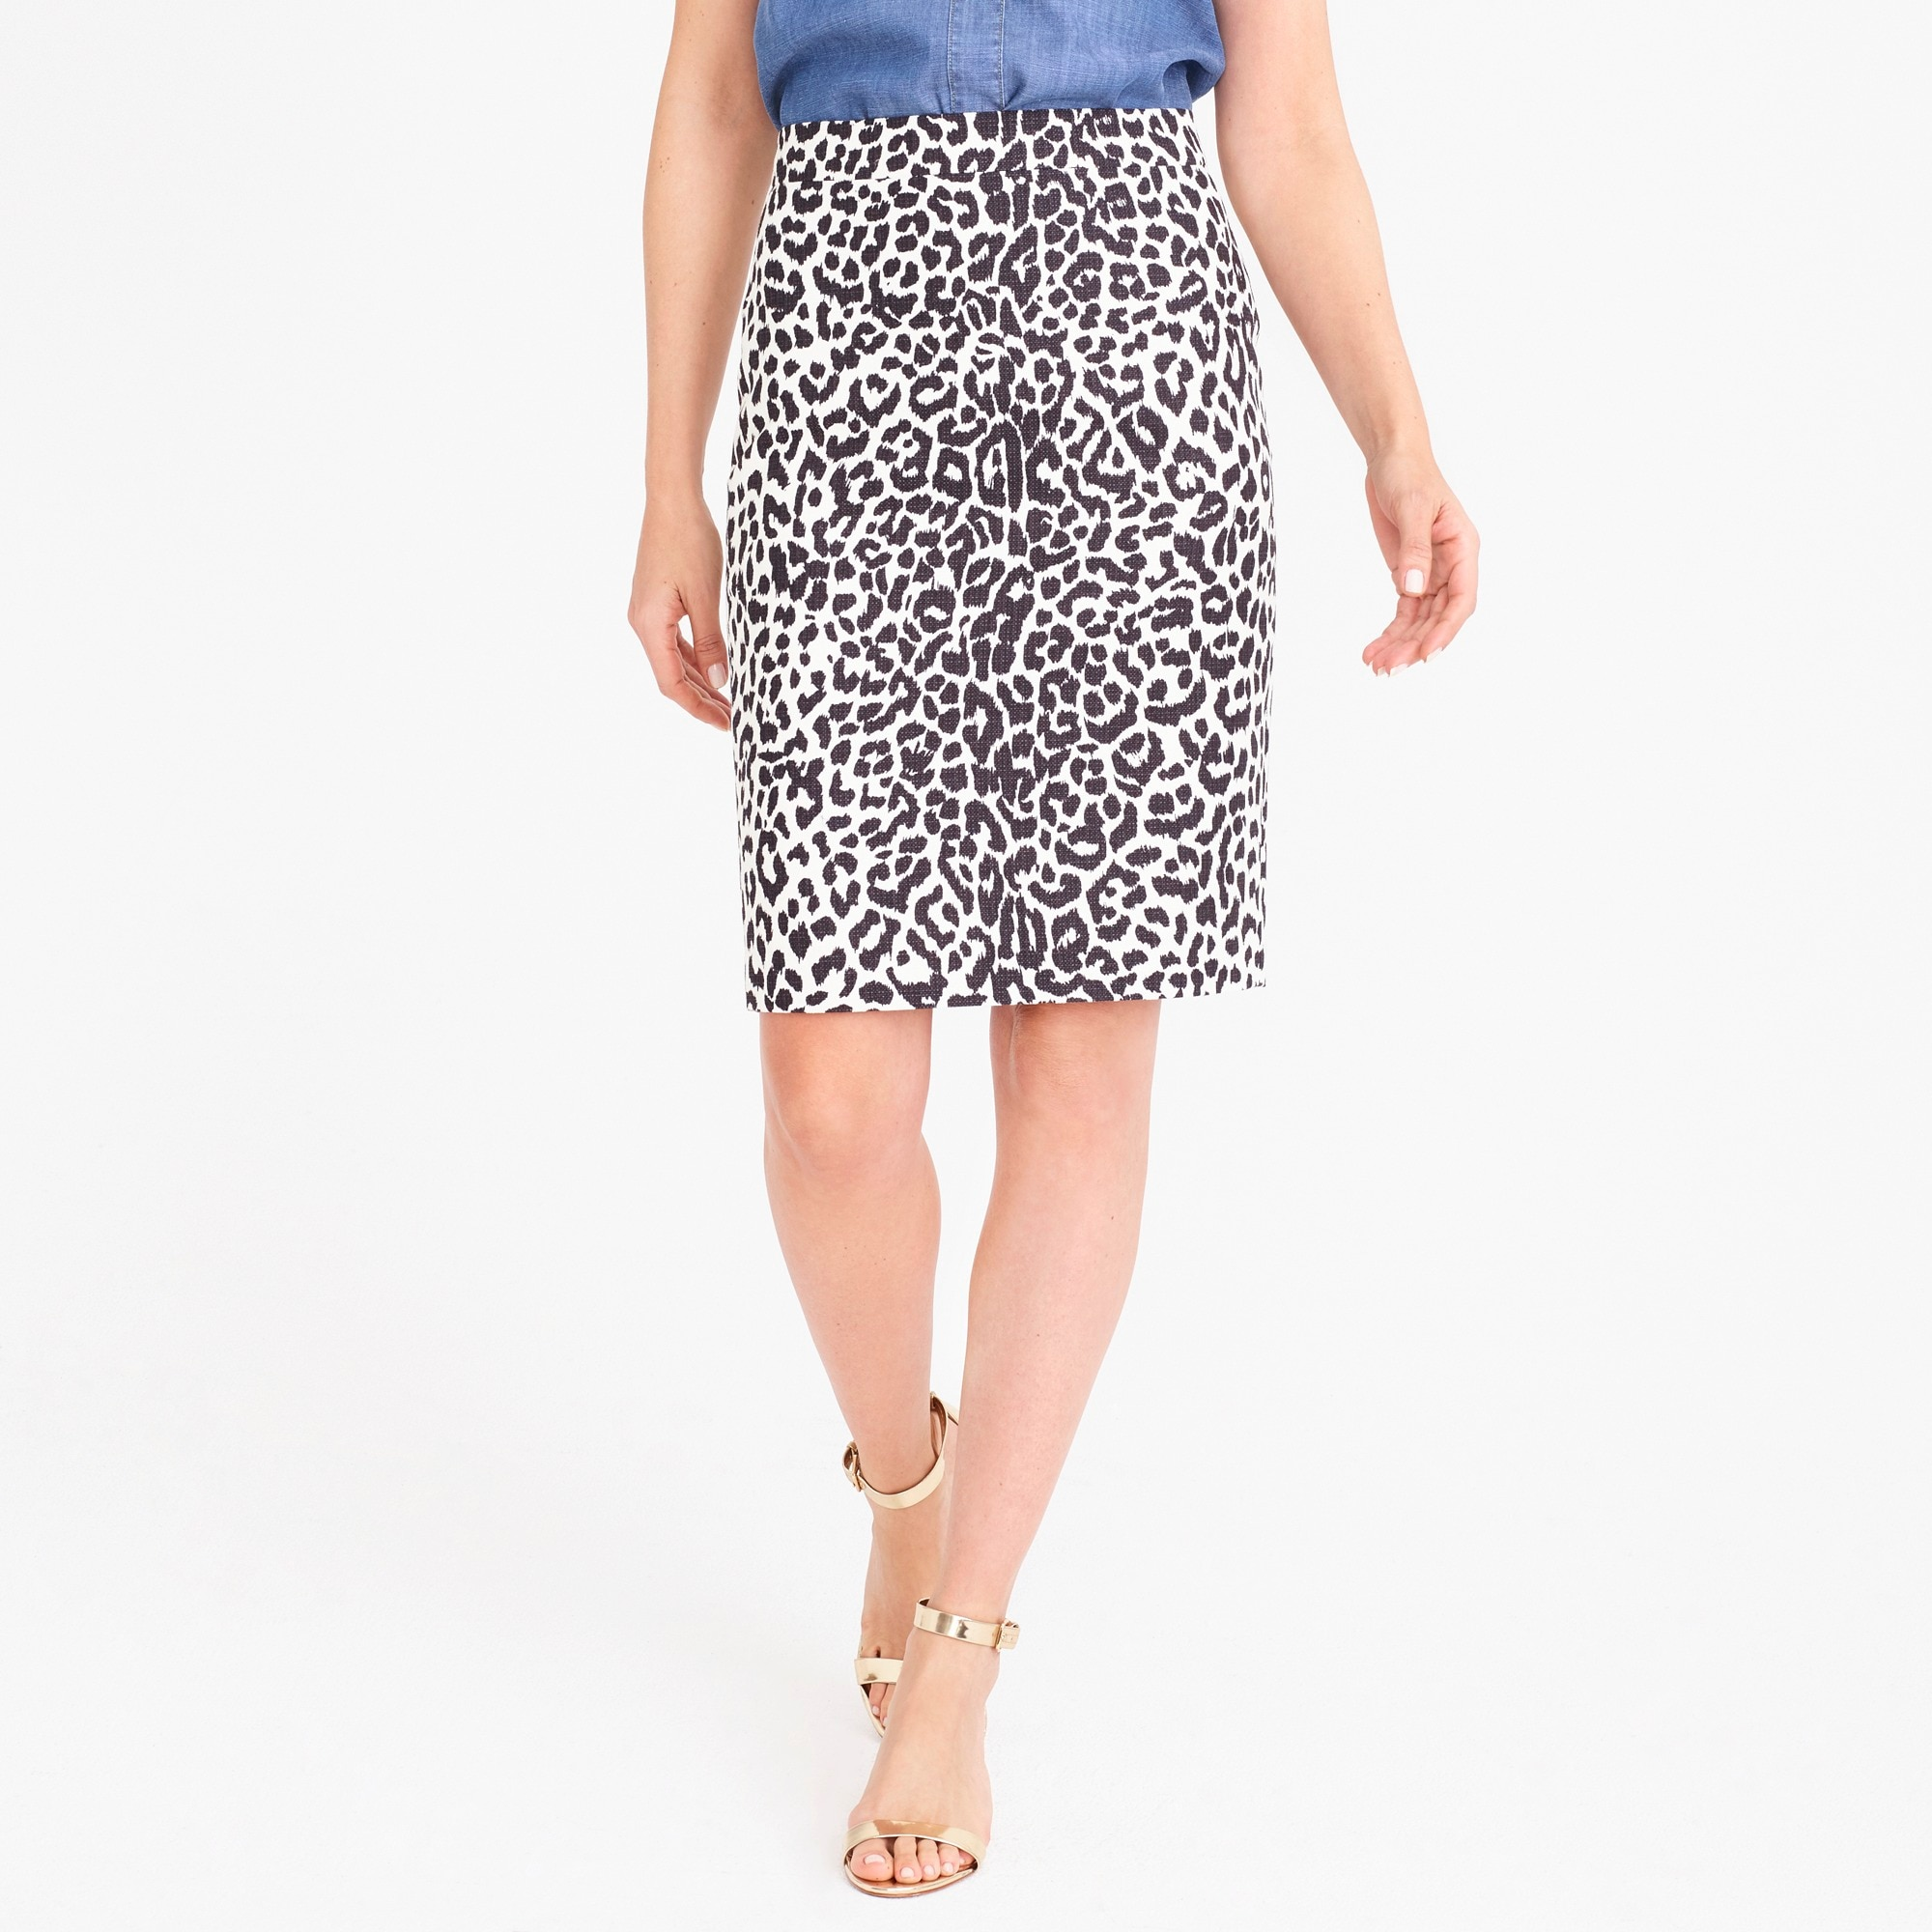 Basketweave pencil skirt factorywomen sizes 18-20 c